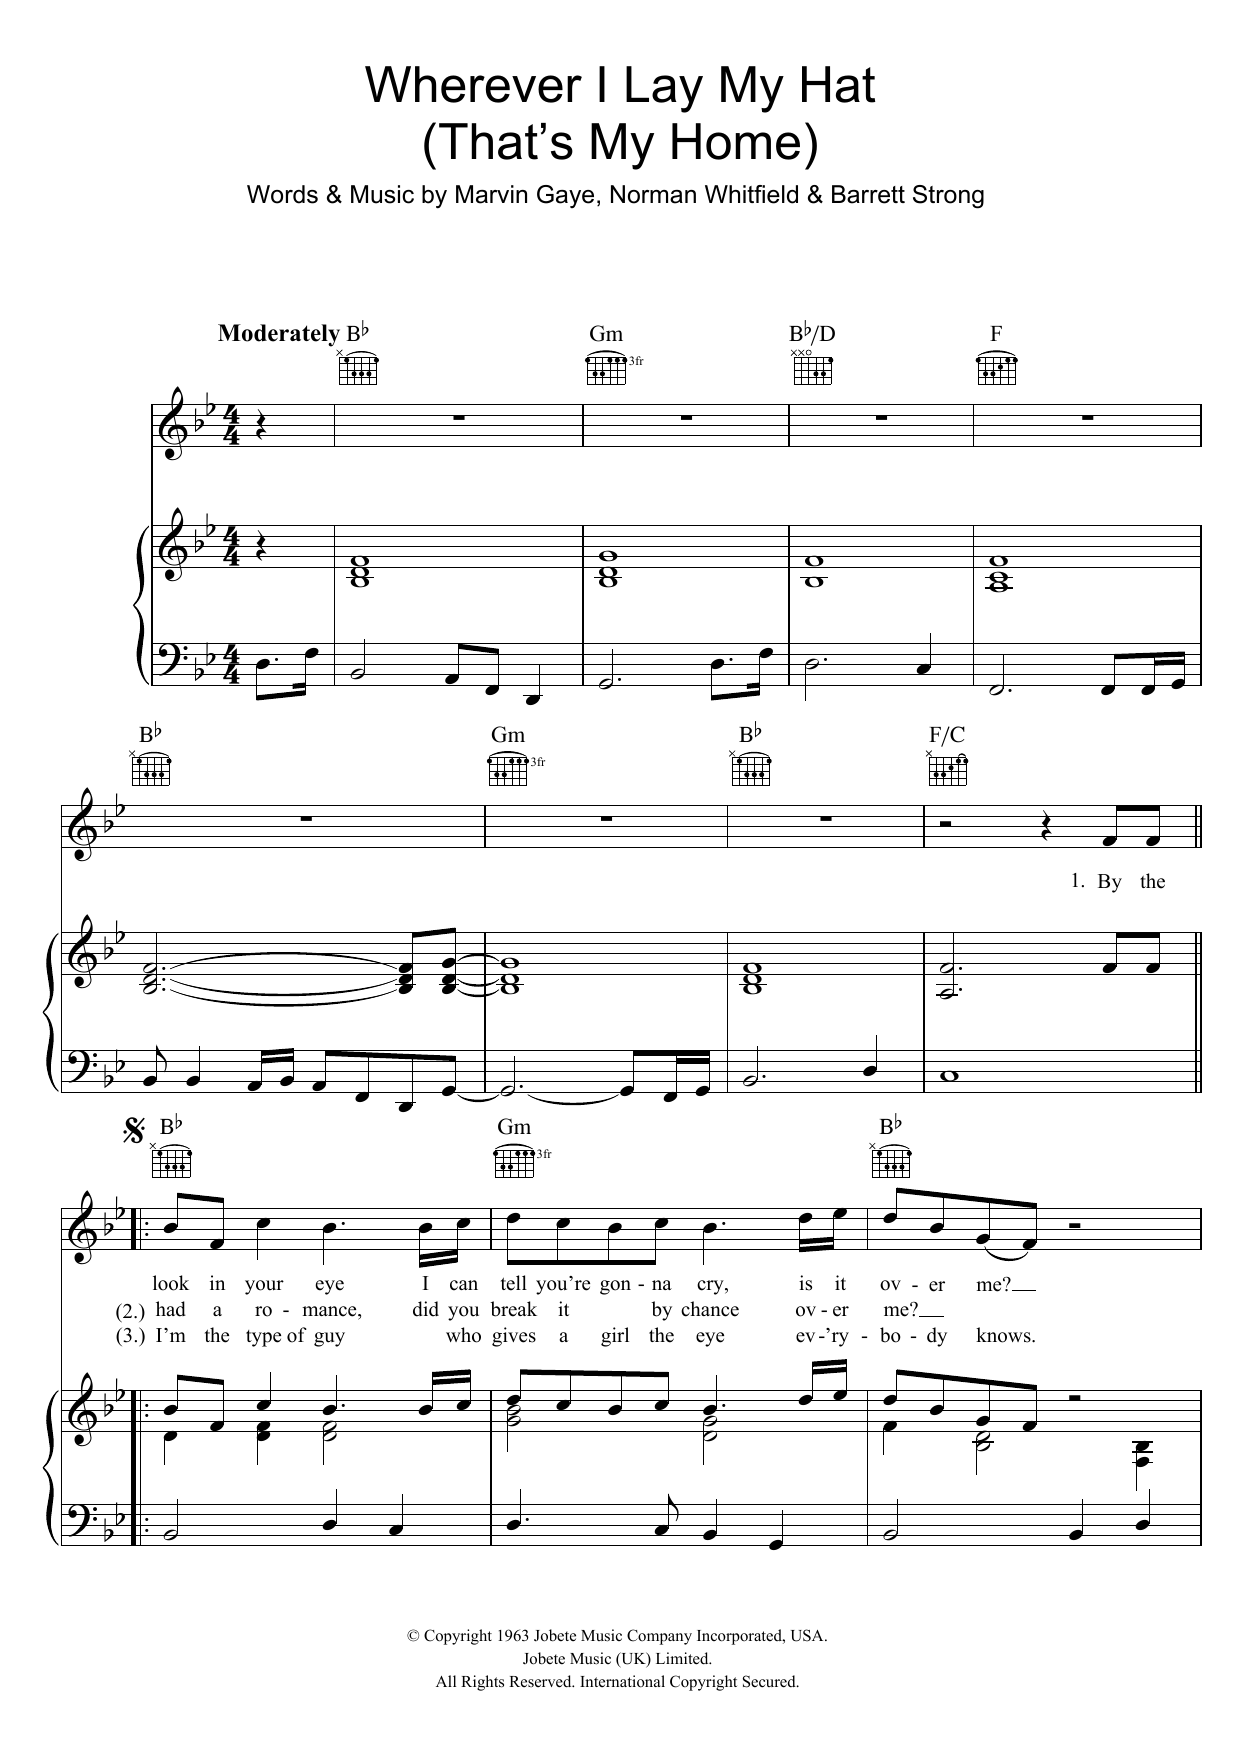 Wherever I Lay My Hat (That's My Home) Sheet Music